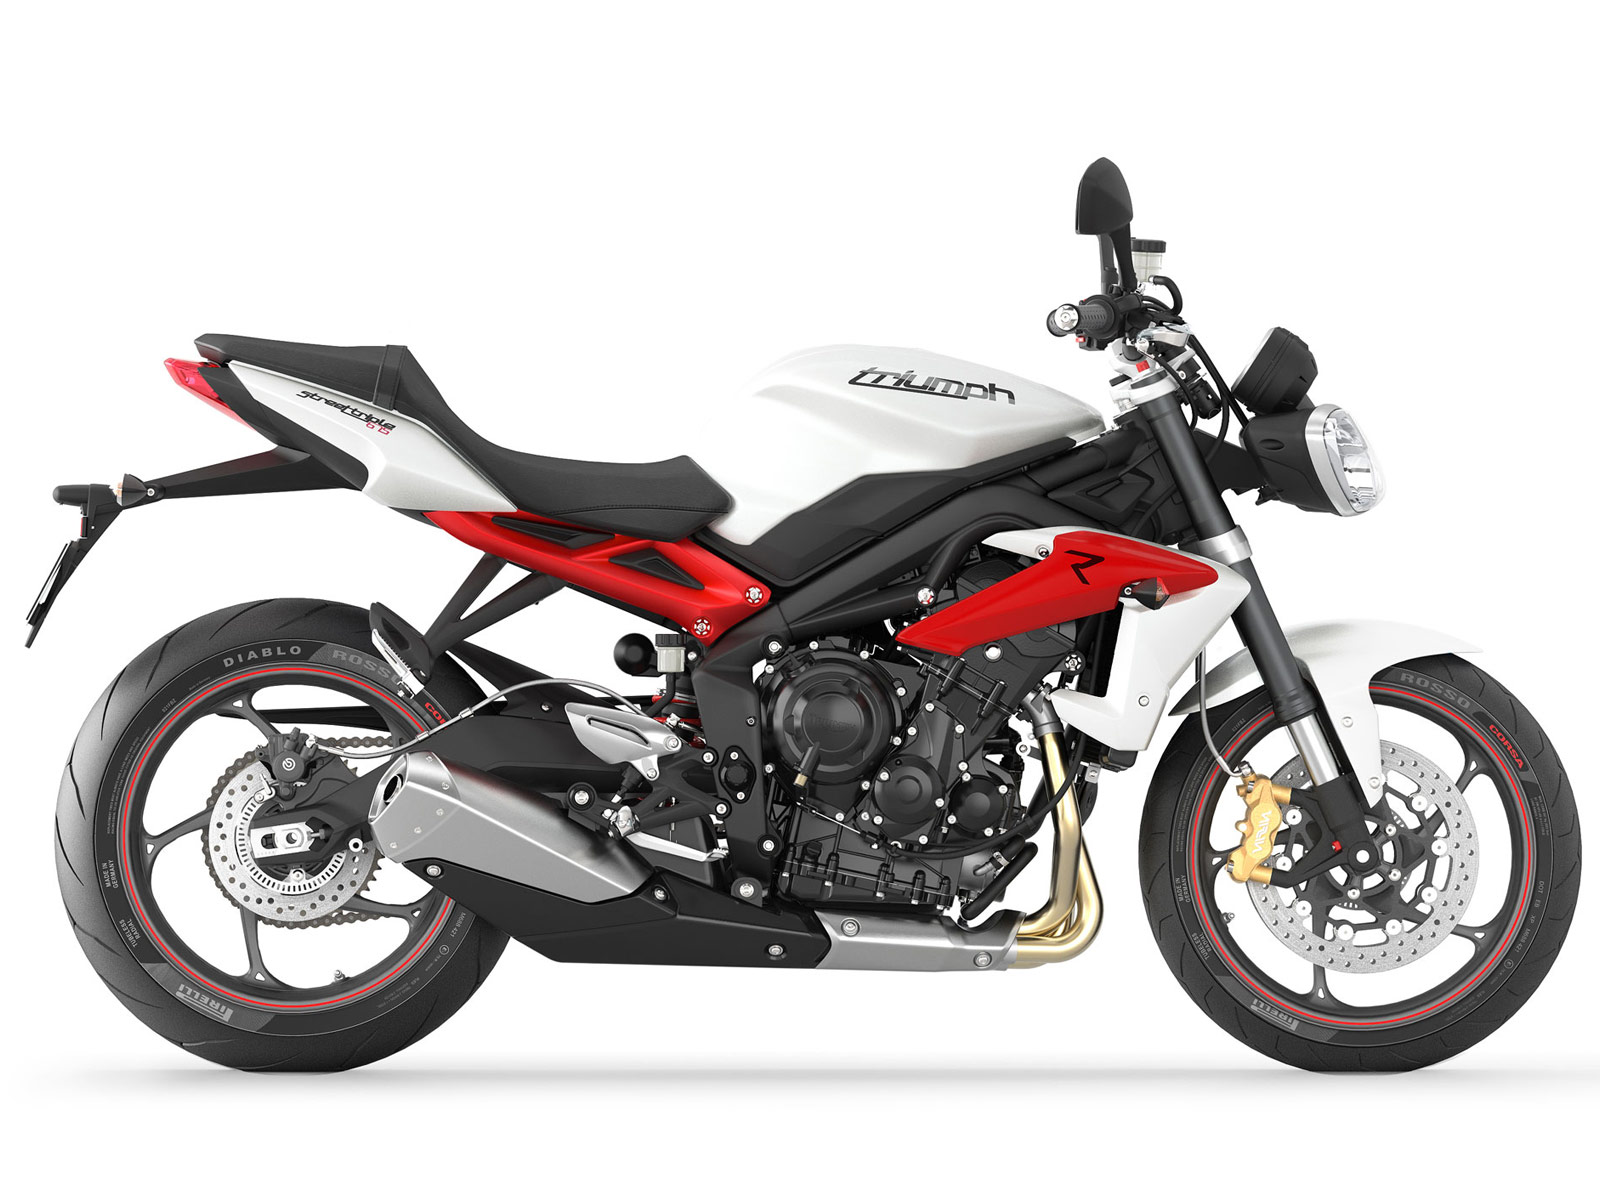 2013 triumph street triple r motorcycle insurance information. Black Bedroom Furniture Sets. Home Design Ideas